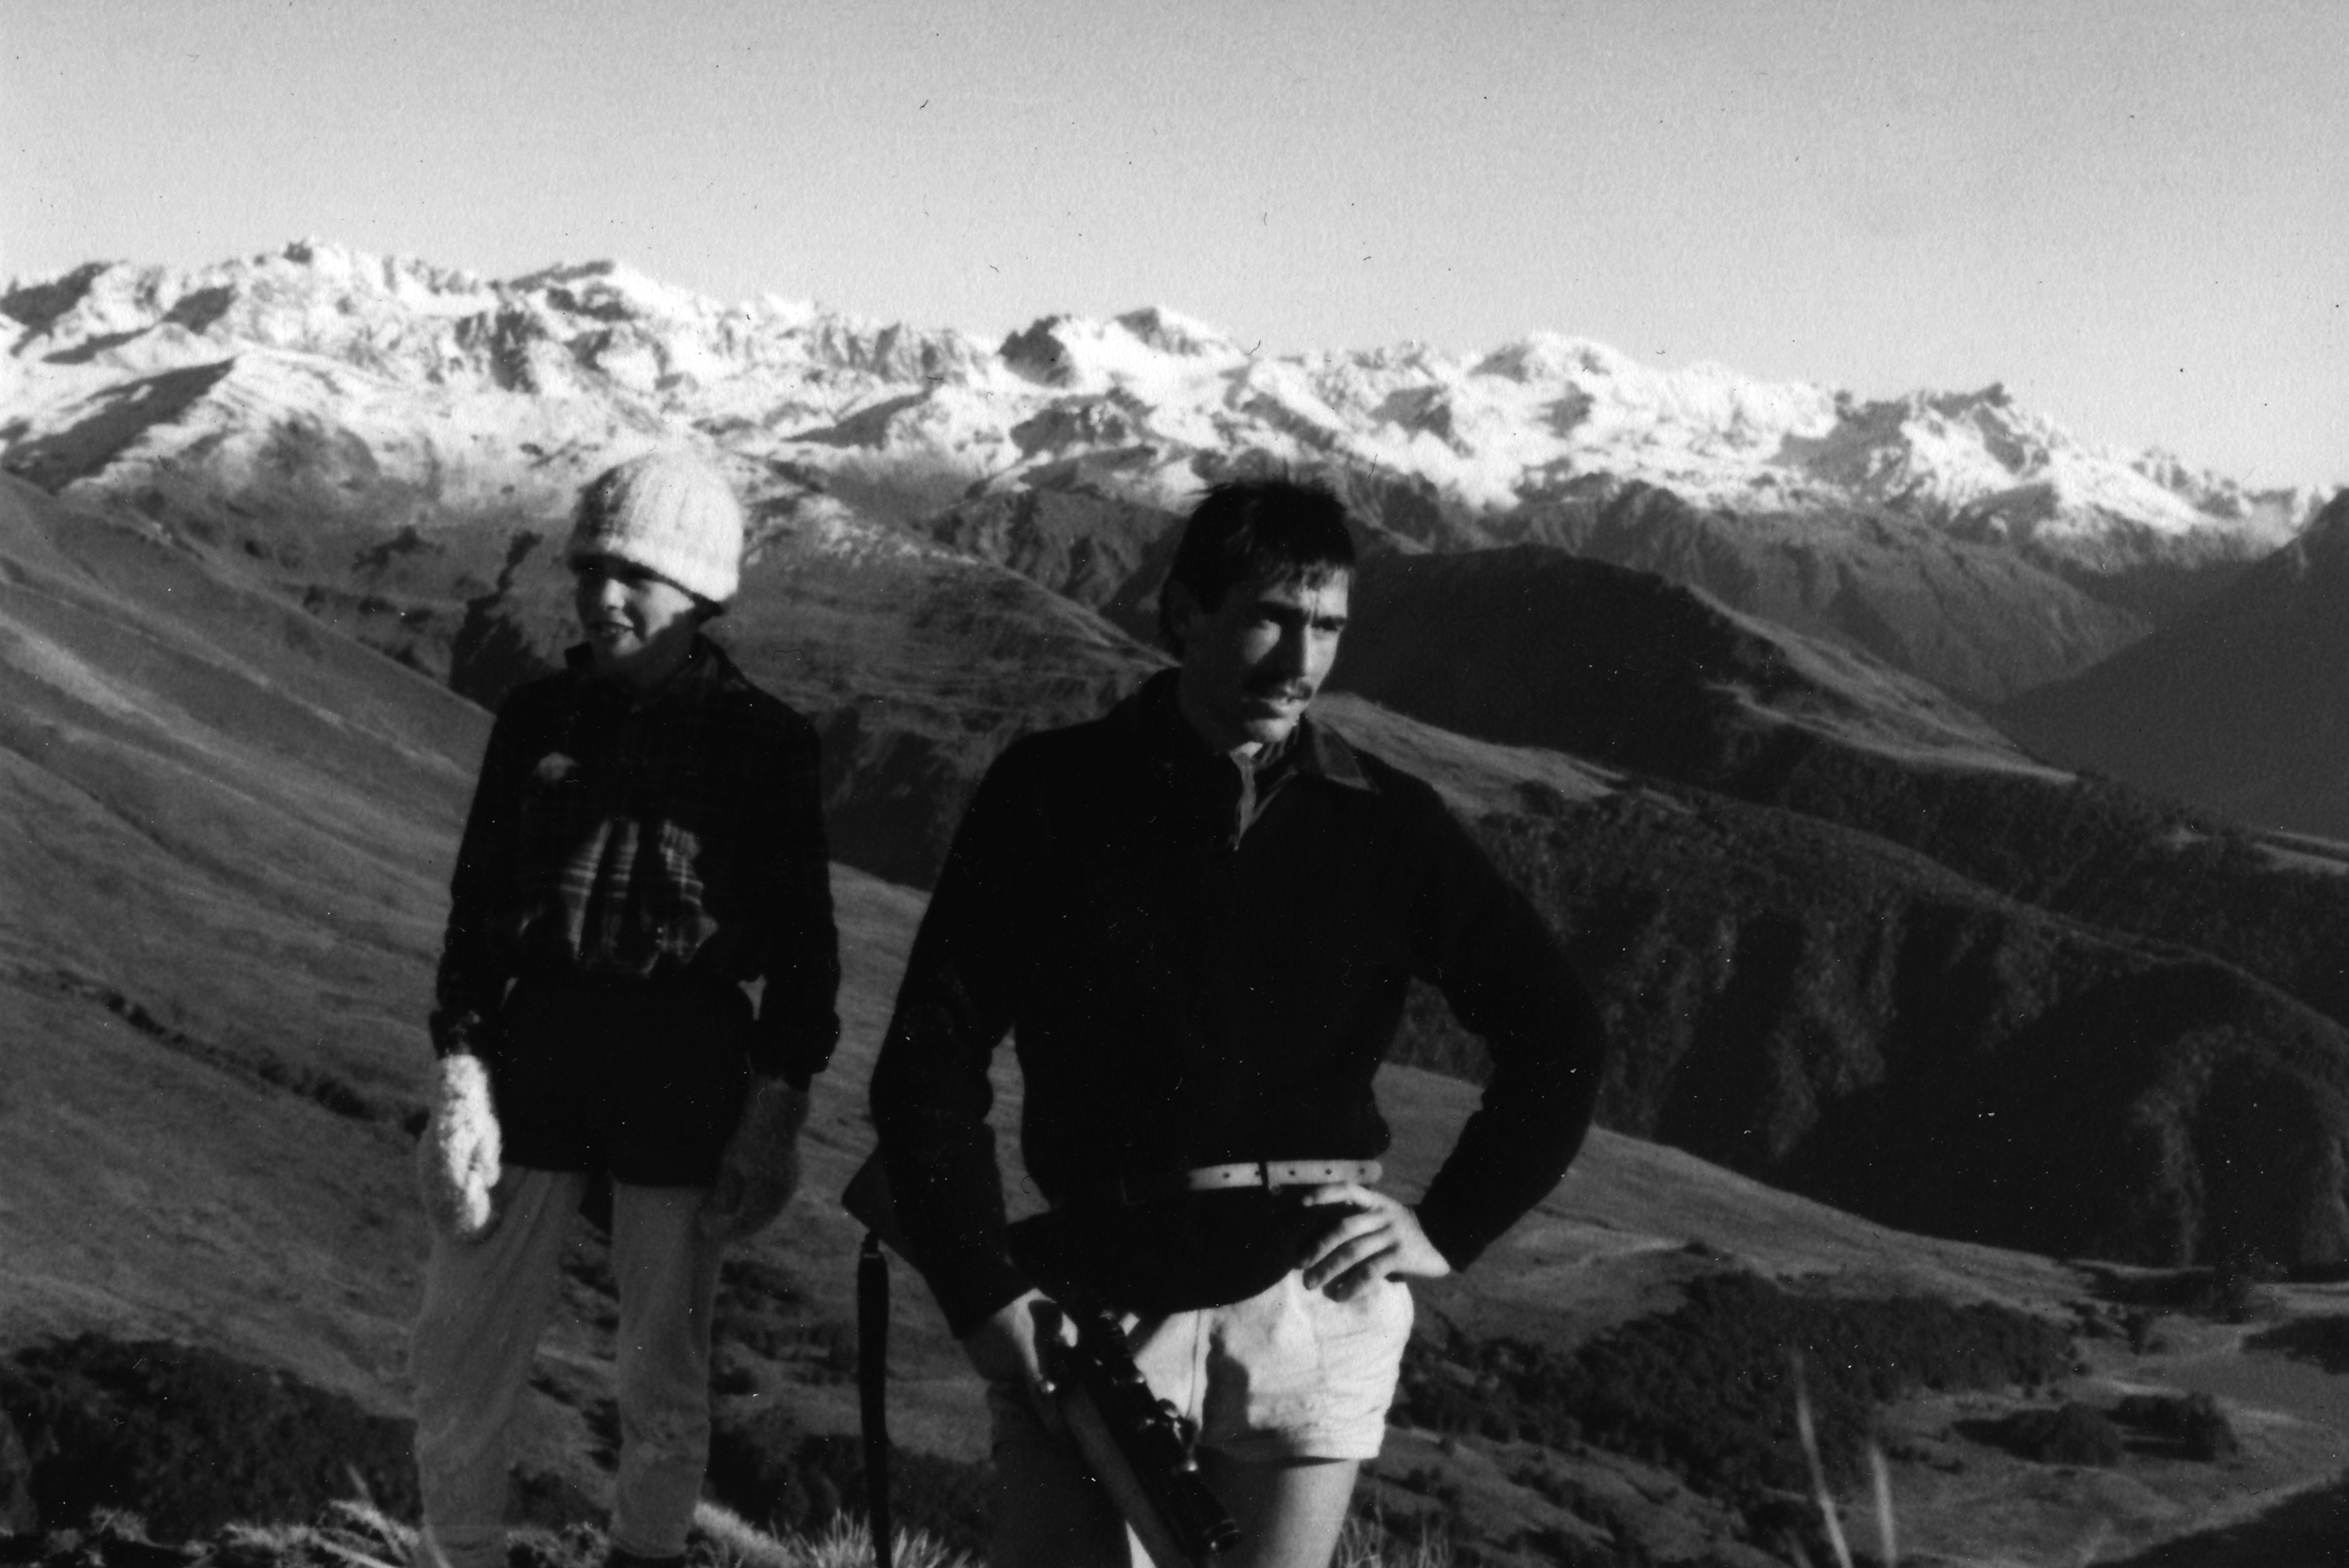 Athol with his brother Tristram at Broad Saddle, Arthur's Pass area, New Zealand, 1980.